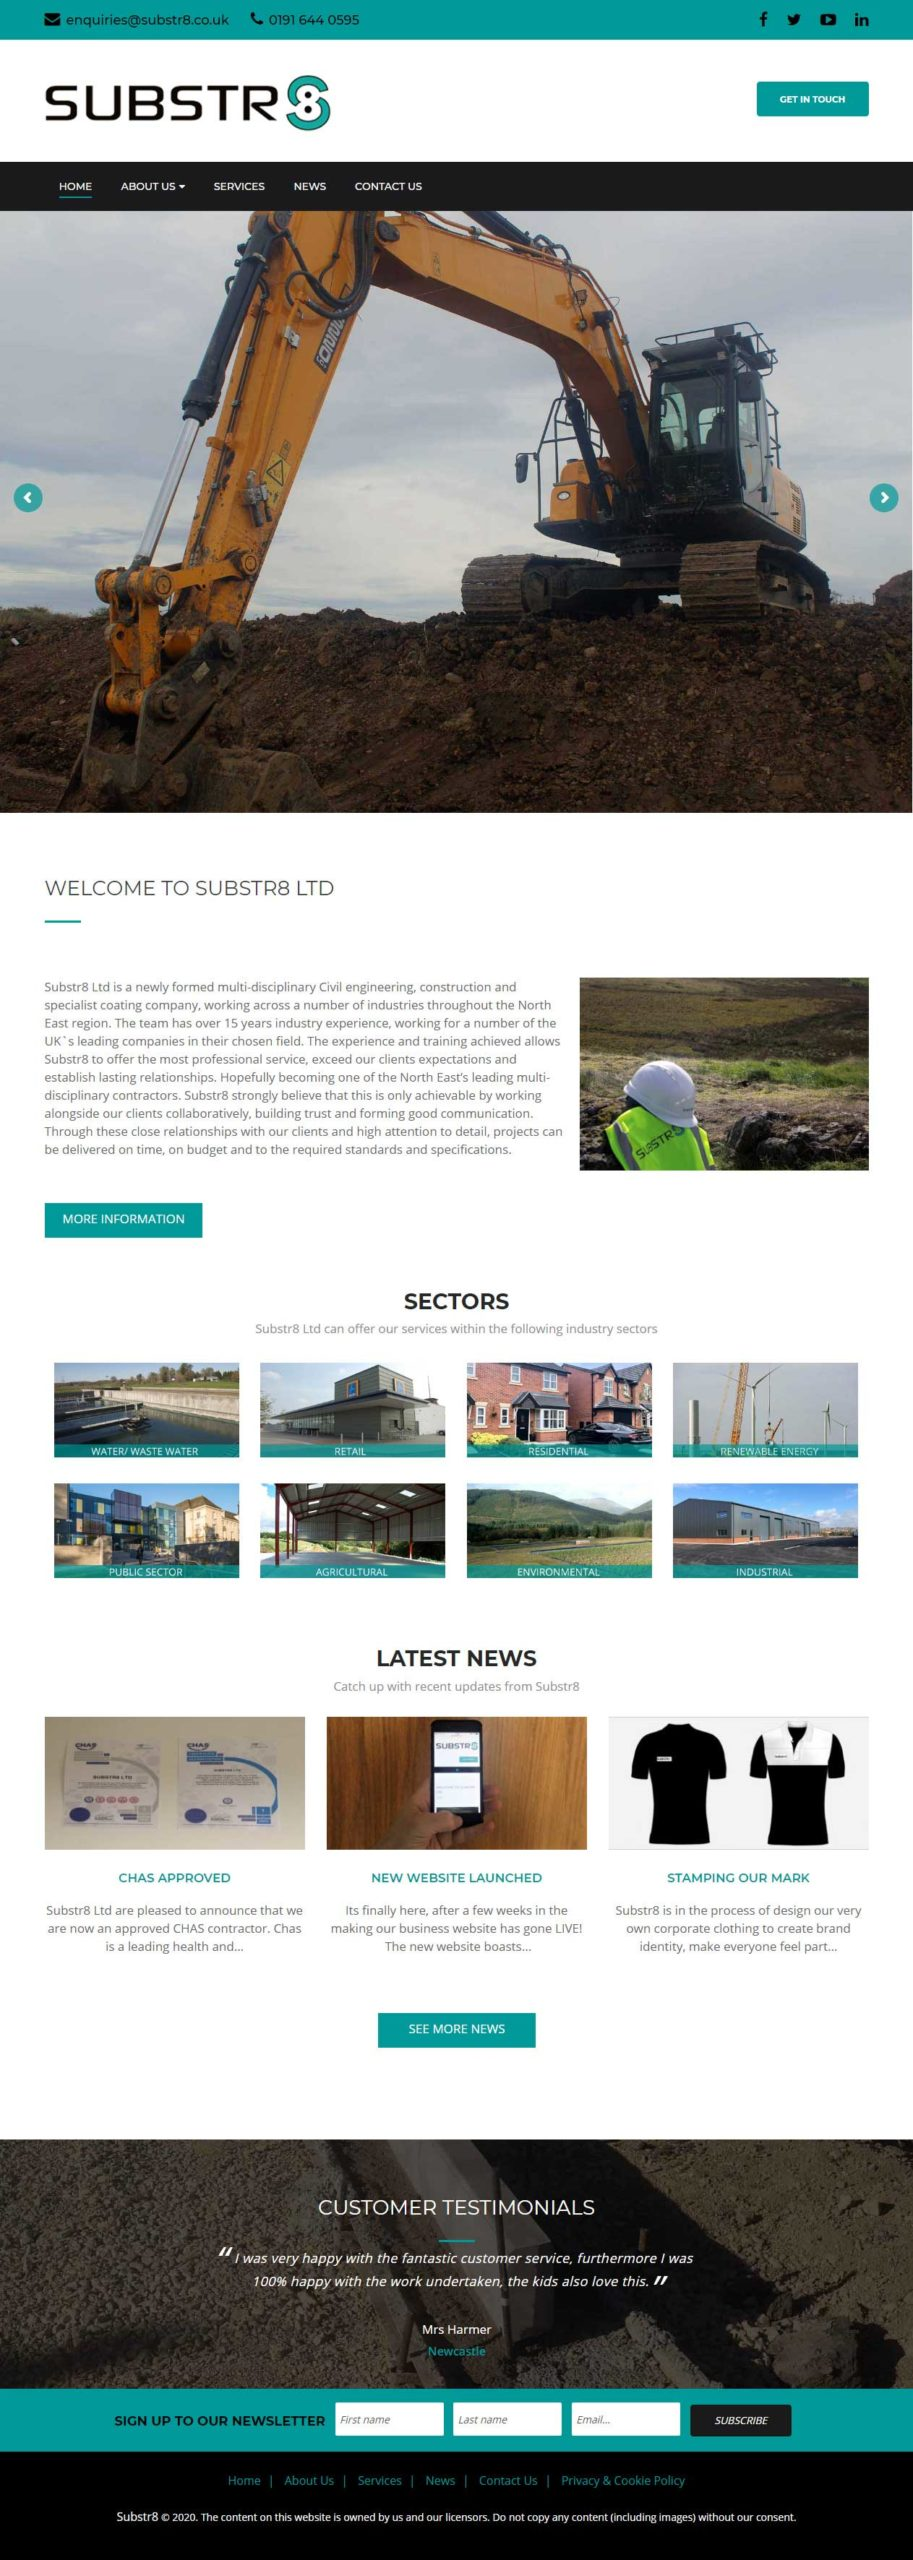 Substr8 Civil engineering, construction and specialist coating company